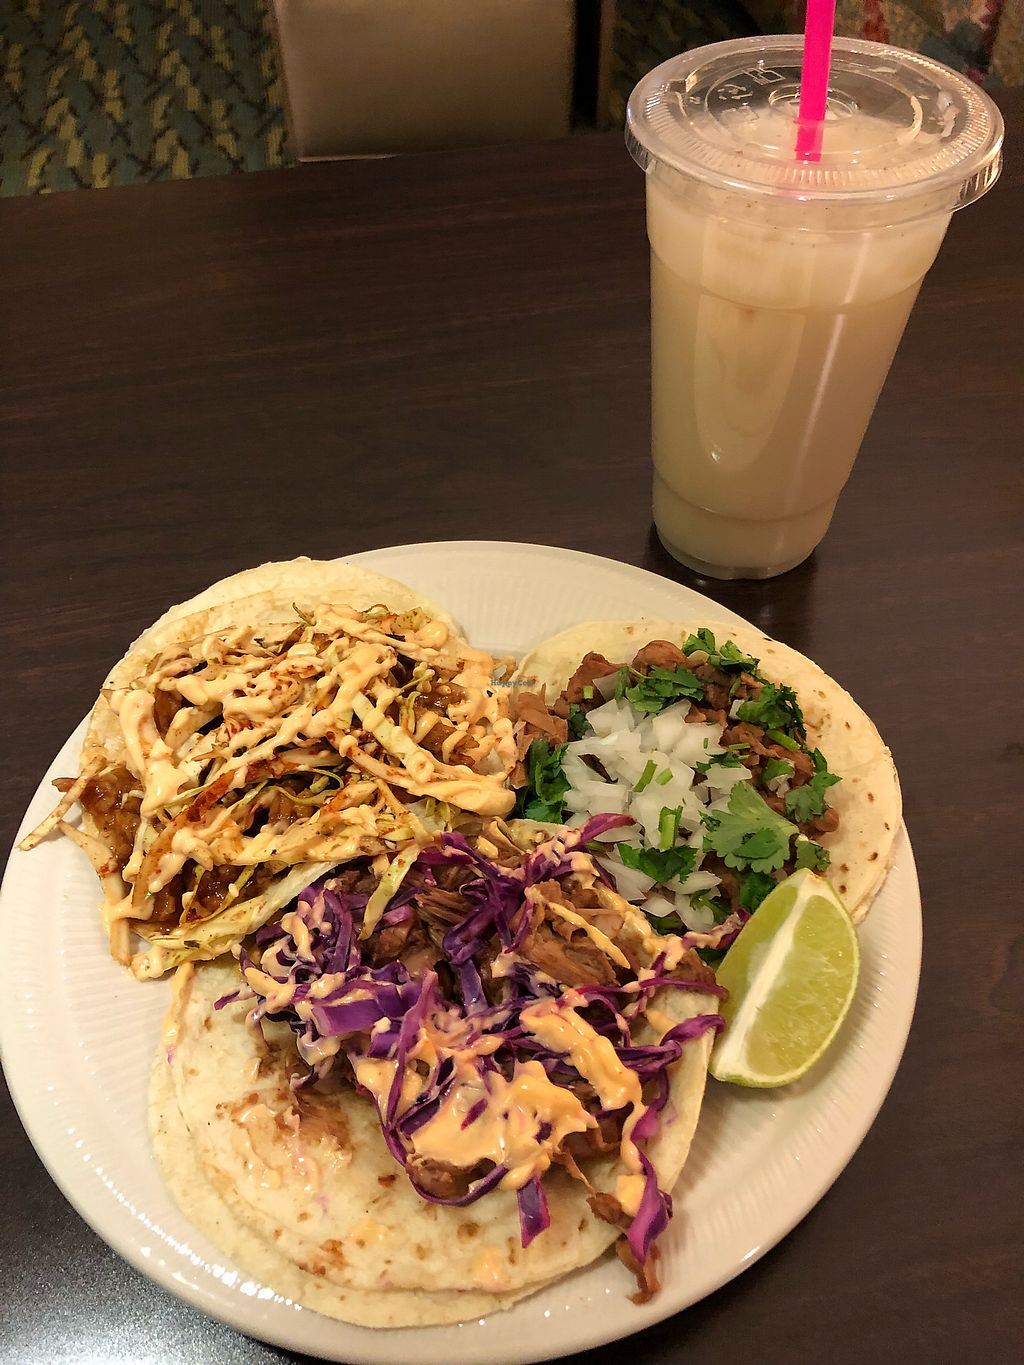 """Photo of Viva Vegan  by <a href=""""/members/profile/DanaS45"""">DanaS45</a> <br/>TACOS!!!  <br/> January 5, 2018  - <a href='/contact/abuse/image/101850/343286'>Report</a>"""